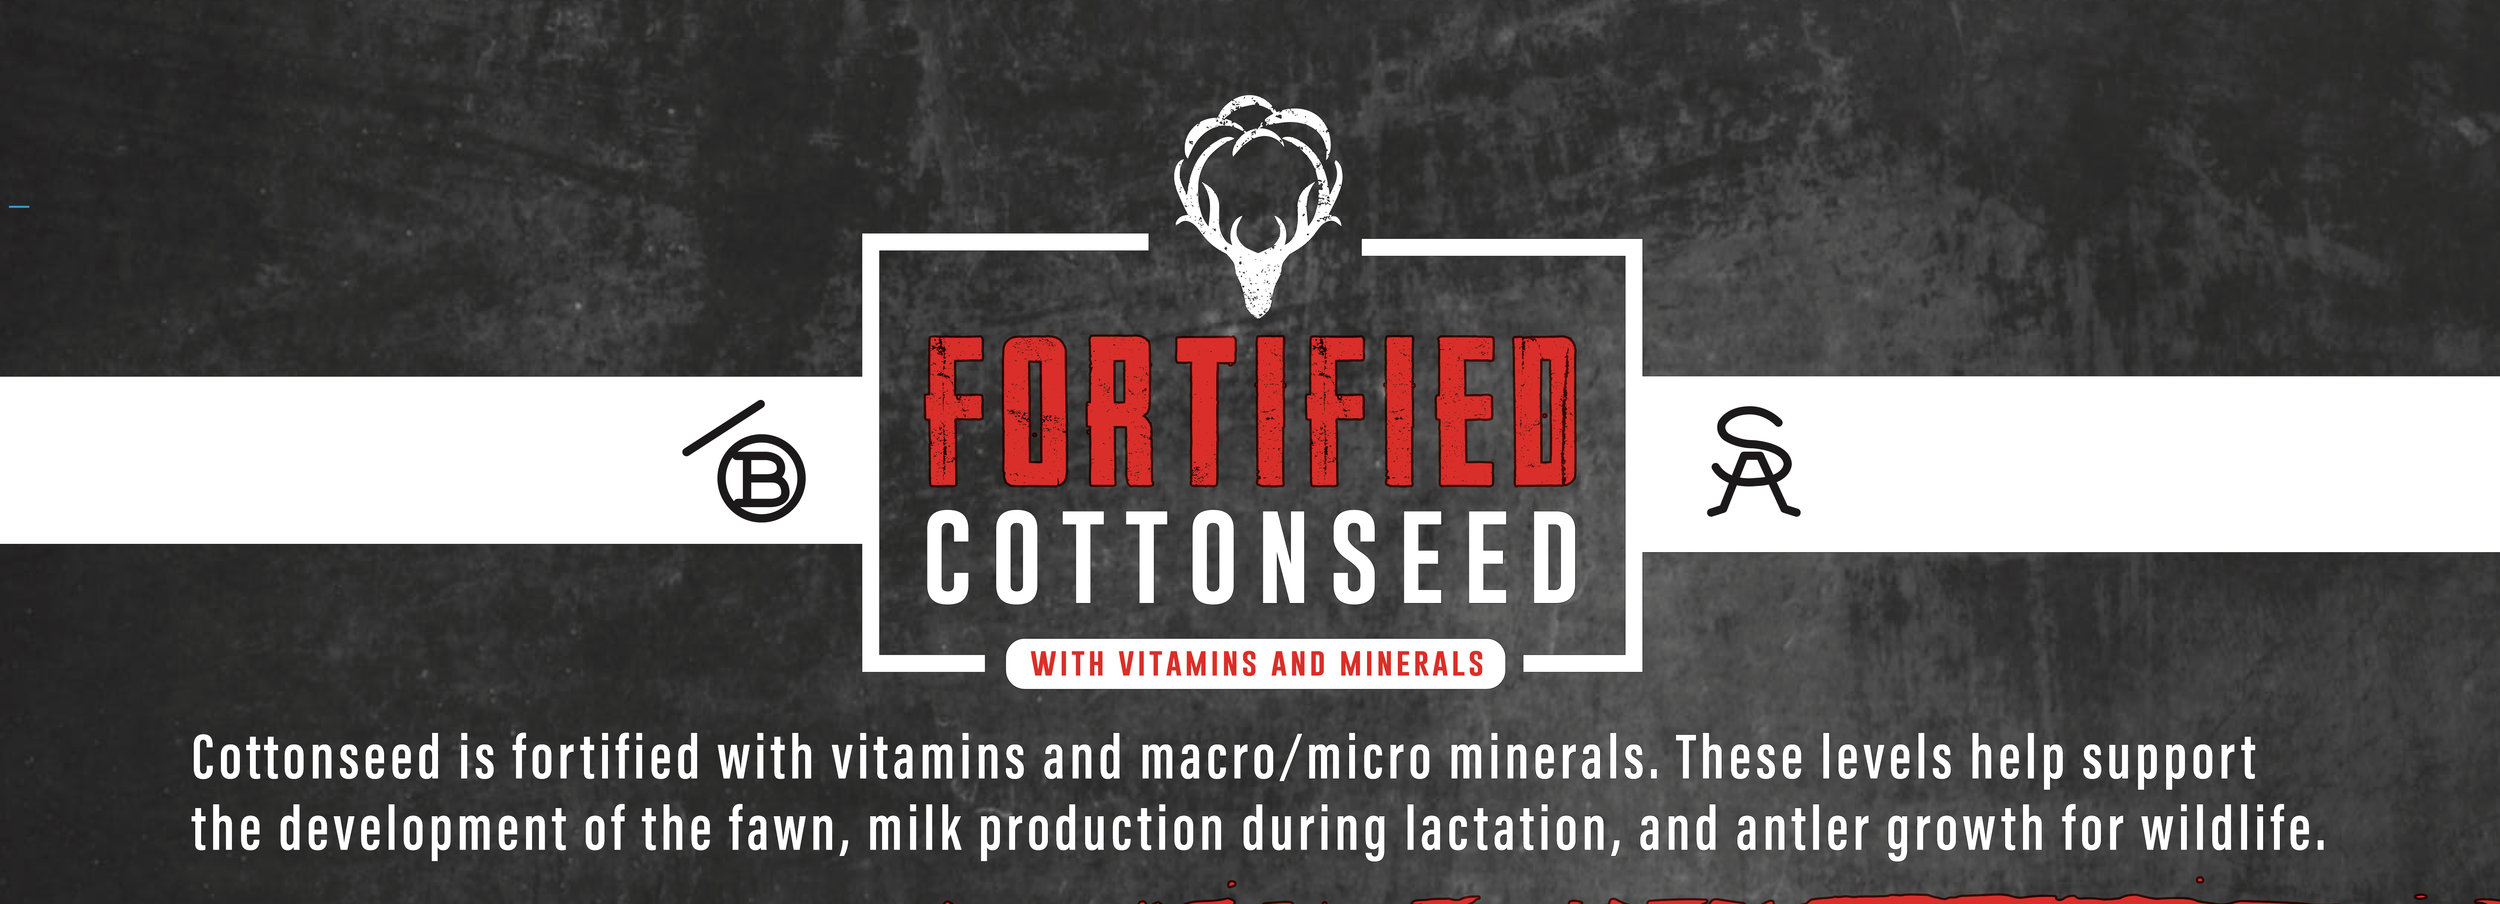 Fortified Cottonseed.jpeg